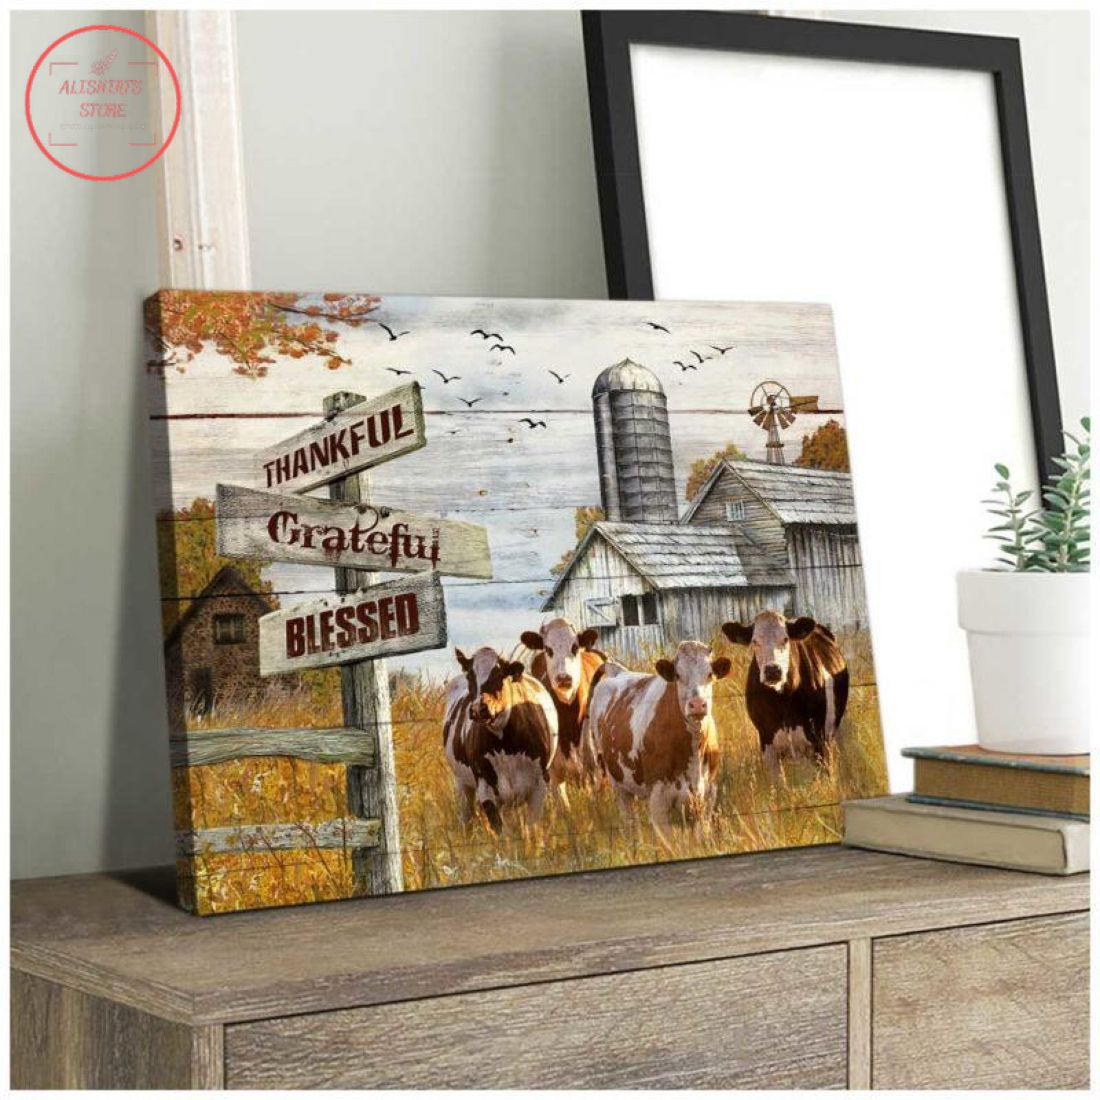 Farmhouse Hereford Cows Thankful Grateful Blessed Christmas Canvas